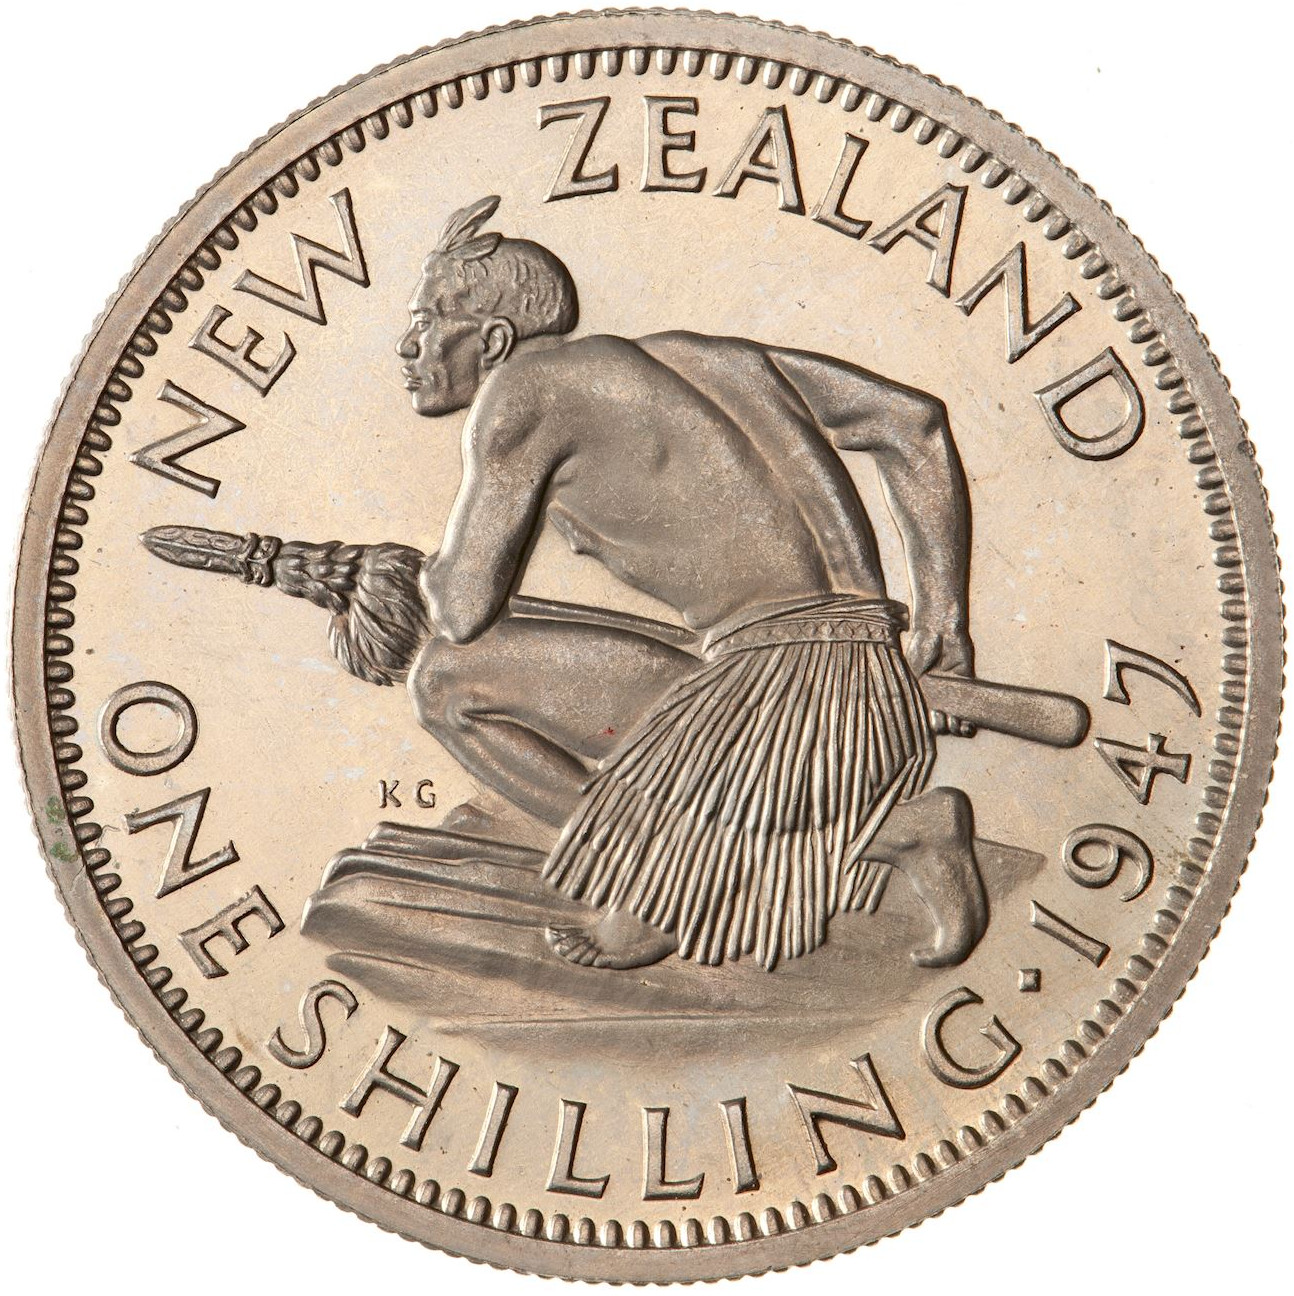 Shilling 1947, Coin from New Zealand - Online Coin Club